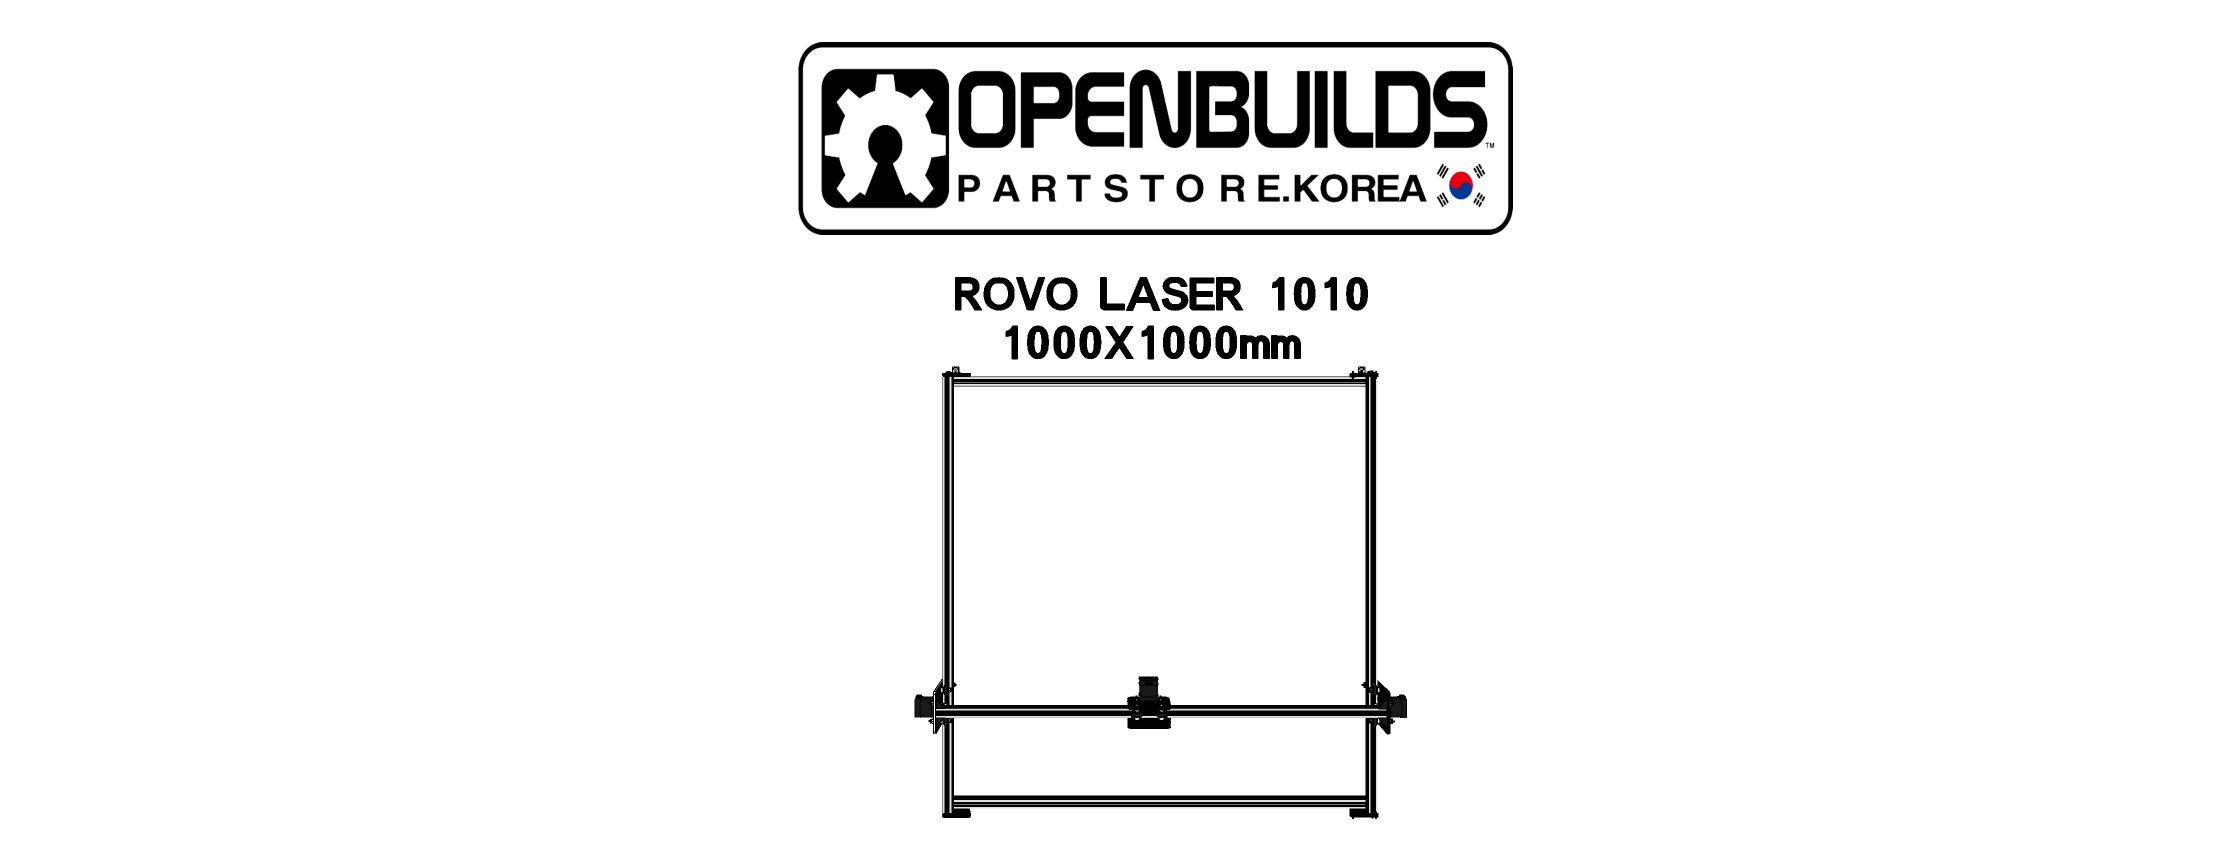 rovo_laser_1000x1000.png